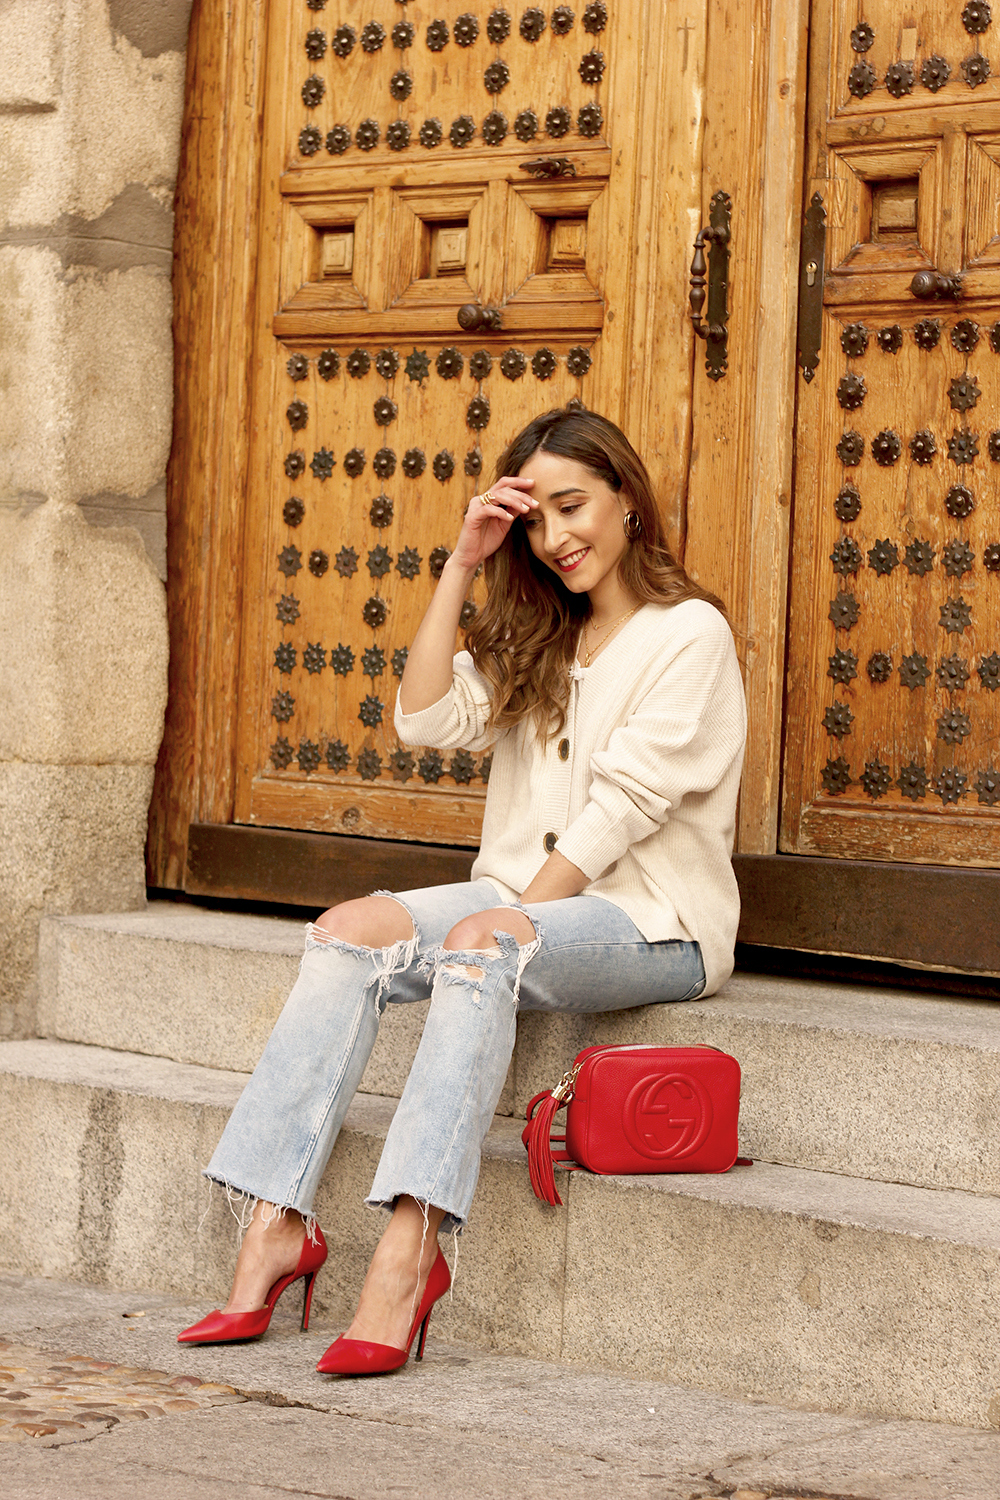 beige cardigan gucci bag red heels ripped jeans street style outfit 20198